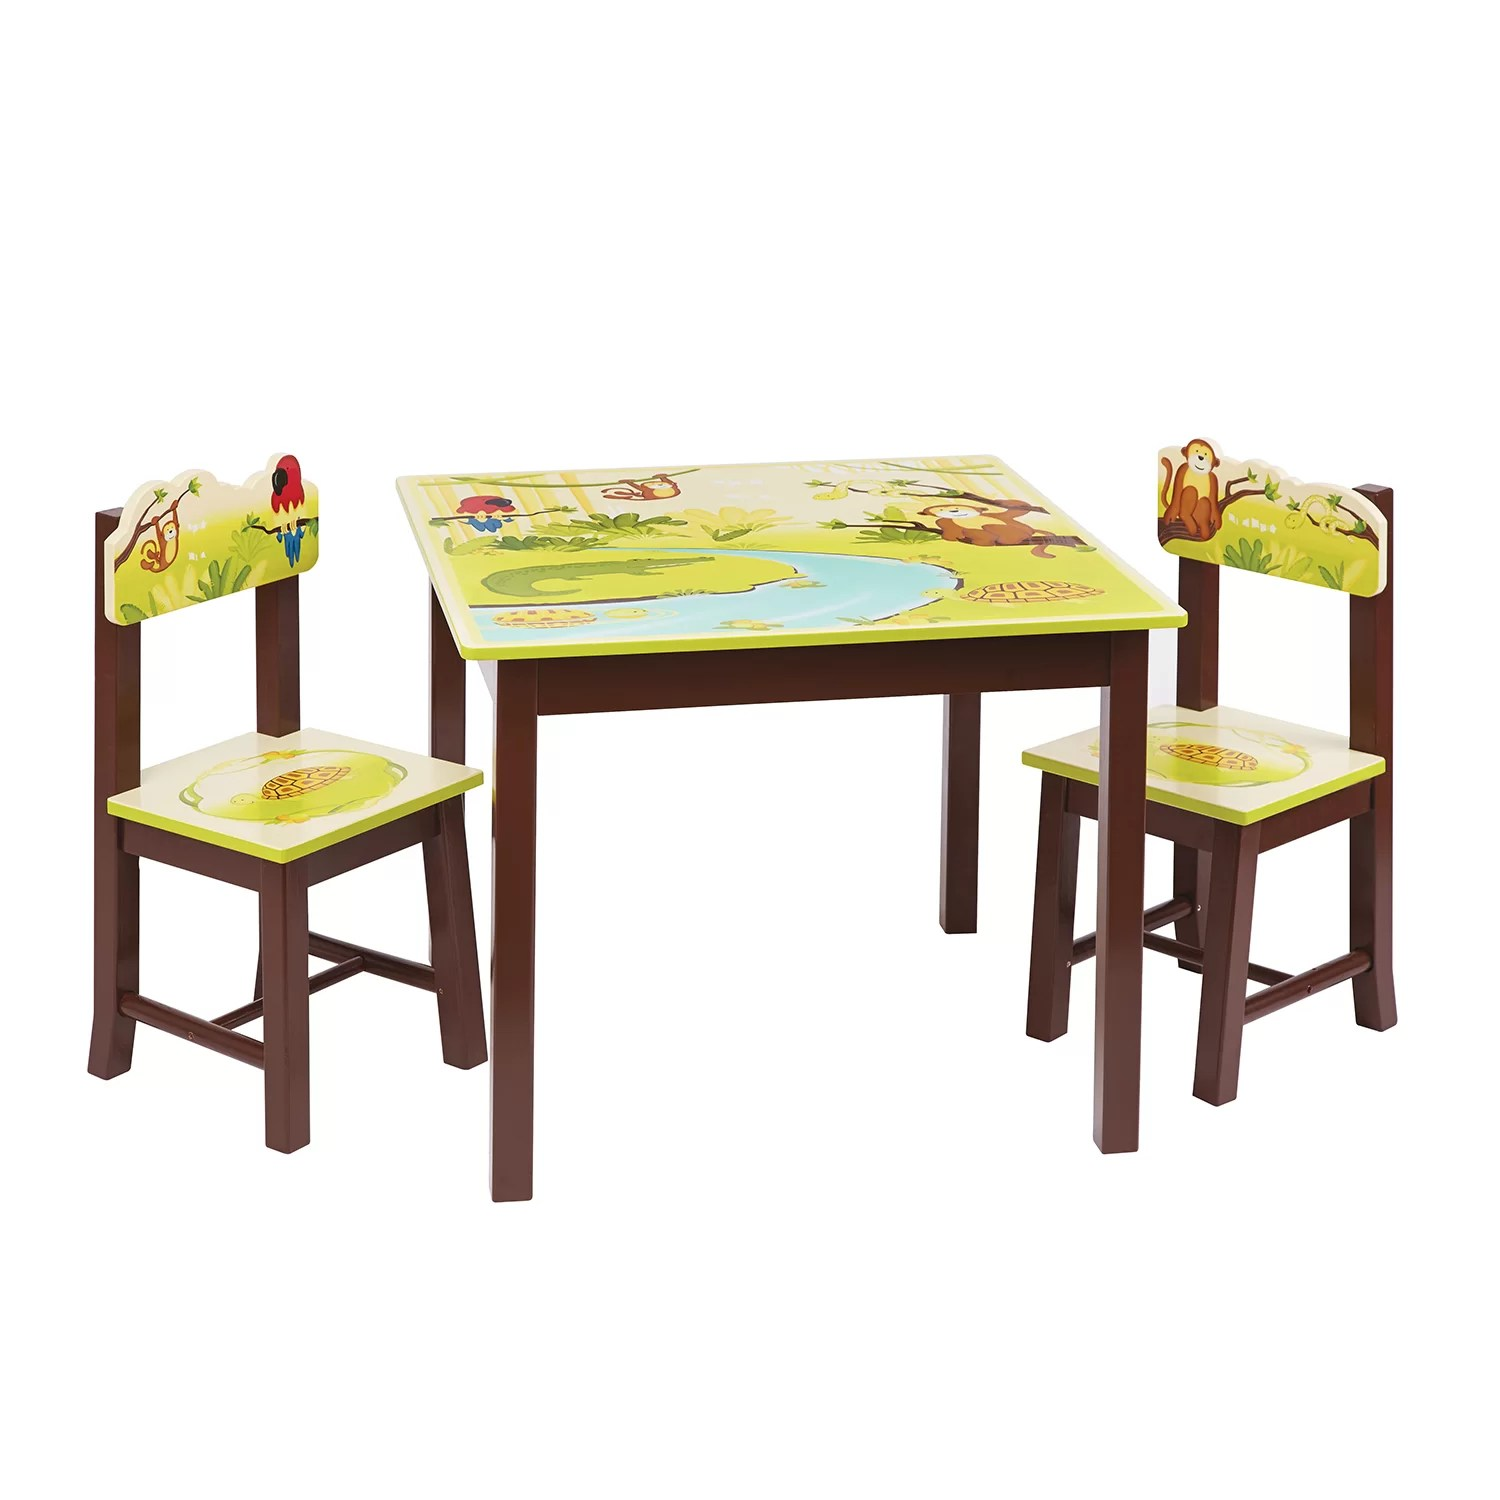 childrens table and chairs modern leather swivel lounge chair guidecraft jungle party kids 3 piece rectangle